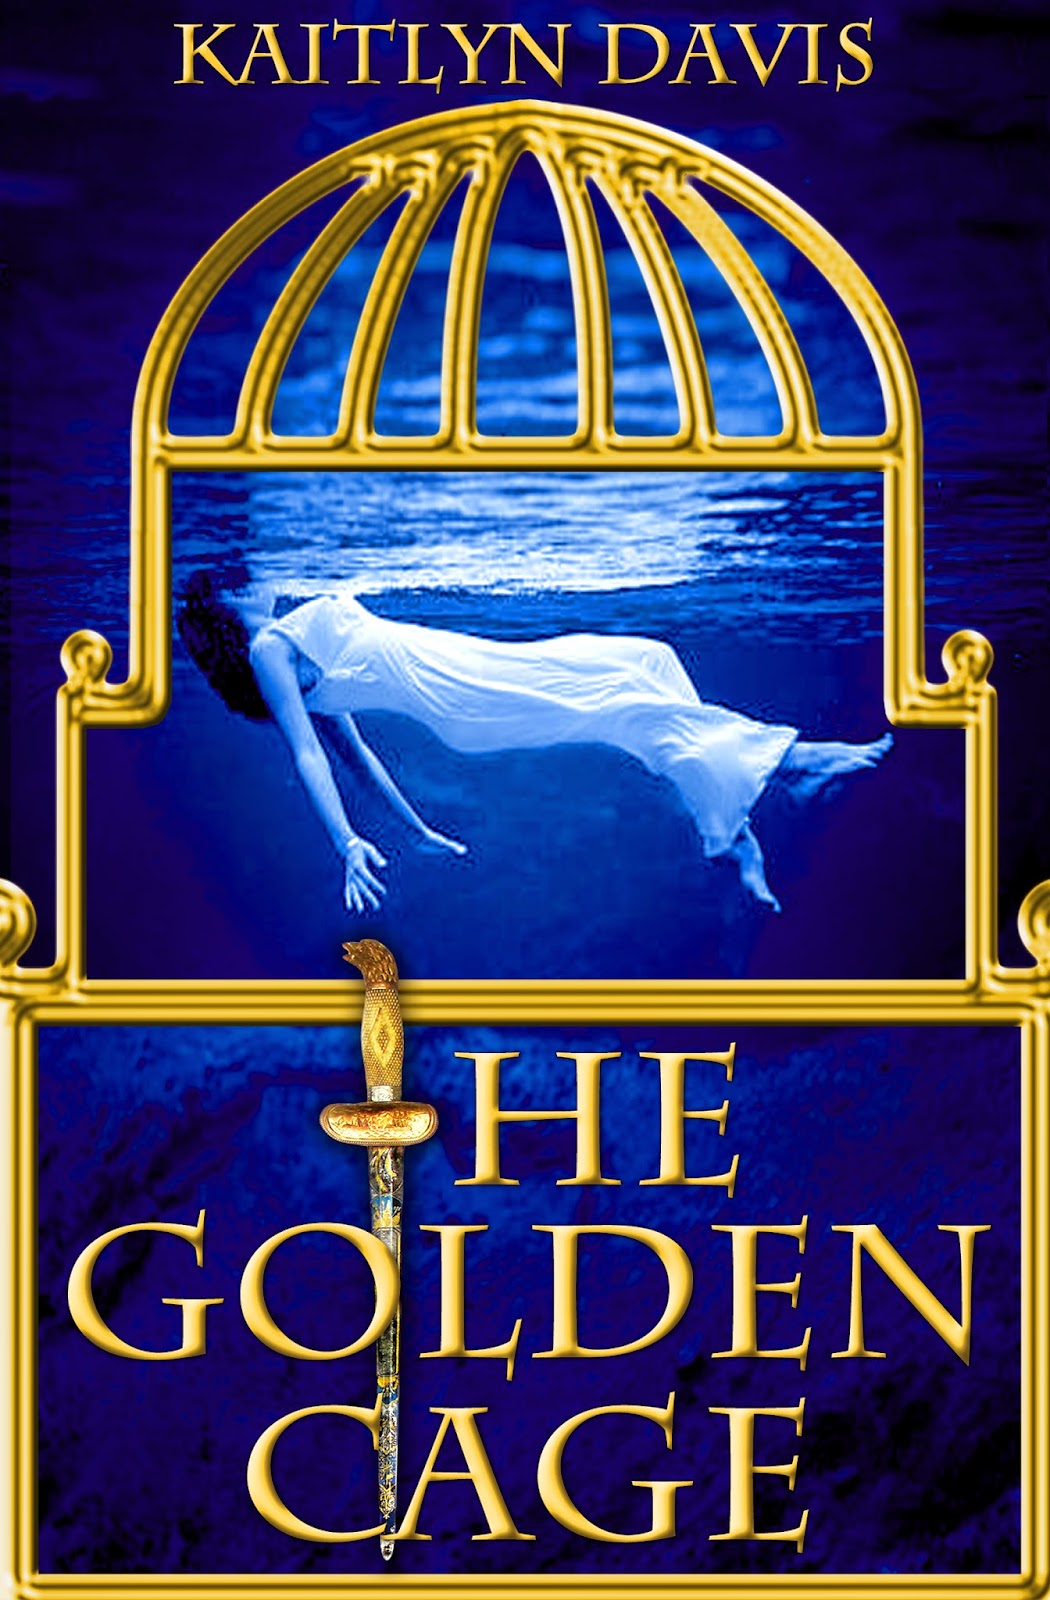 https://www.goodreads.com/book/show/21892106-the-golden-cage?from_search=true